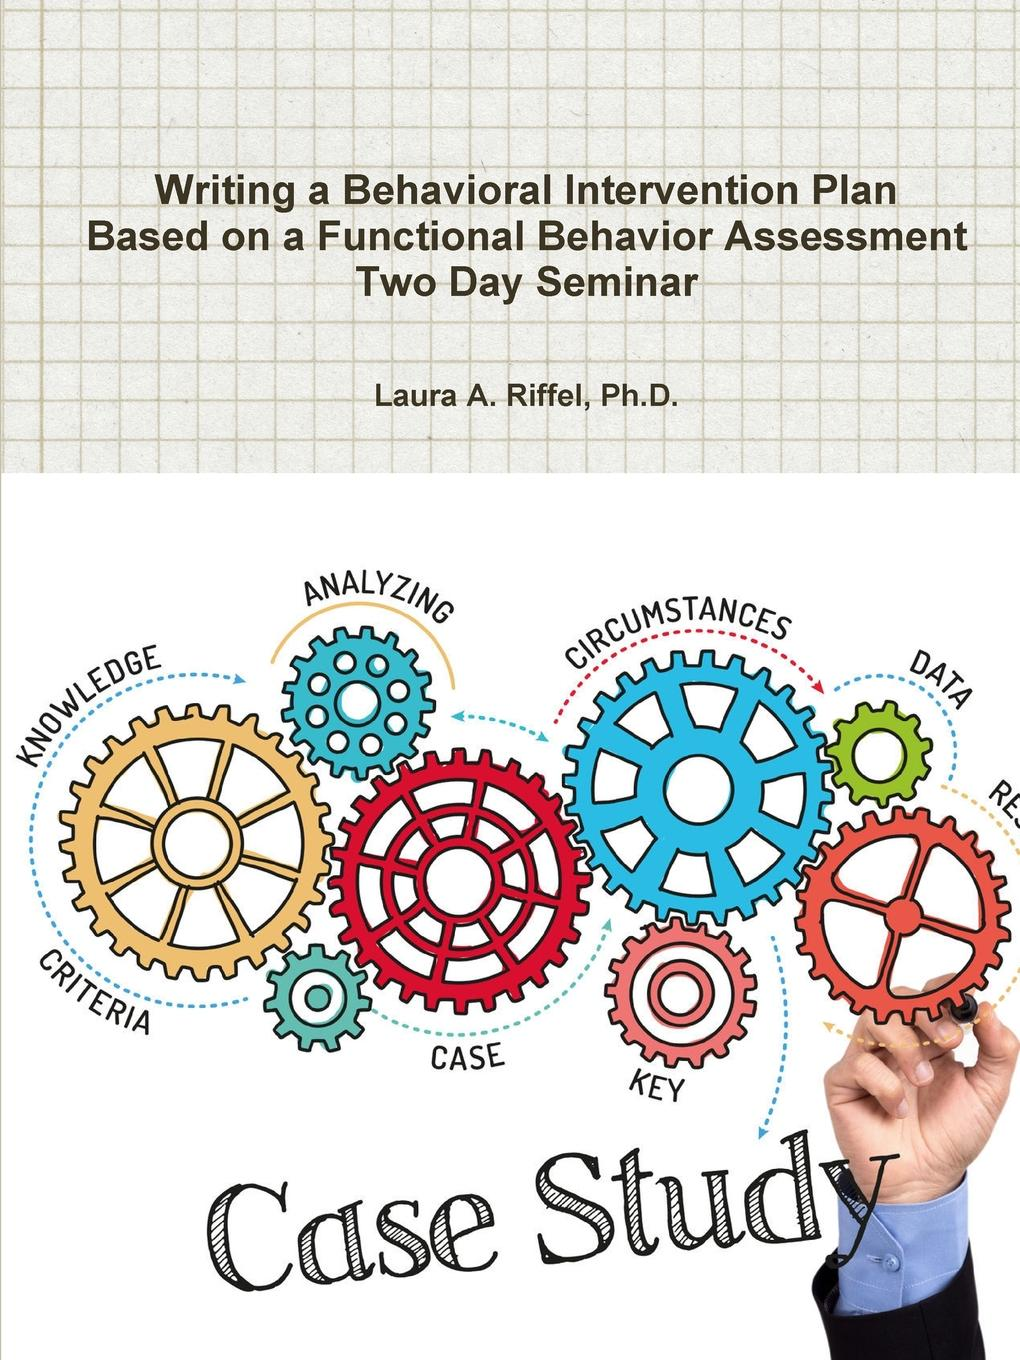 Ph.D. Laura A. Riffel Writing a Behavioral Intervention Plan Based on a Functional Behavior Assessment Two Day Seminar цена